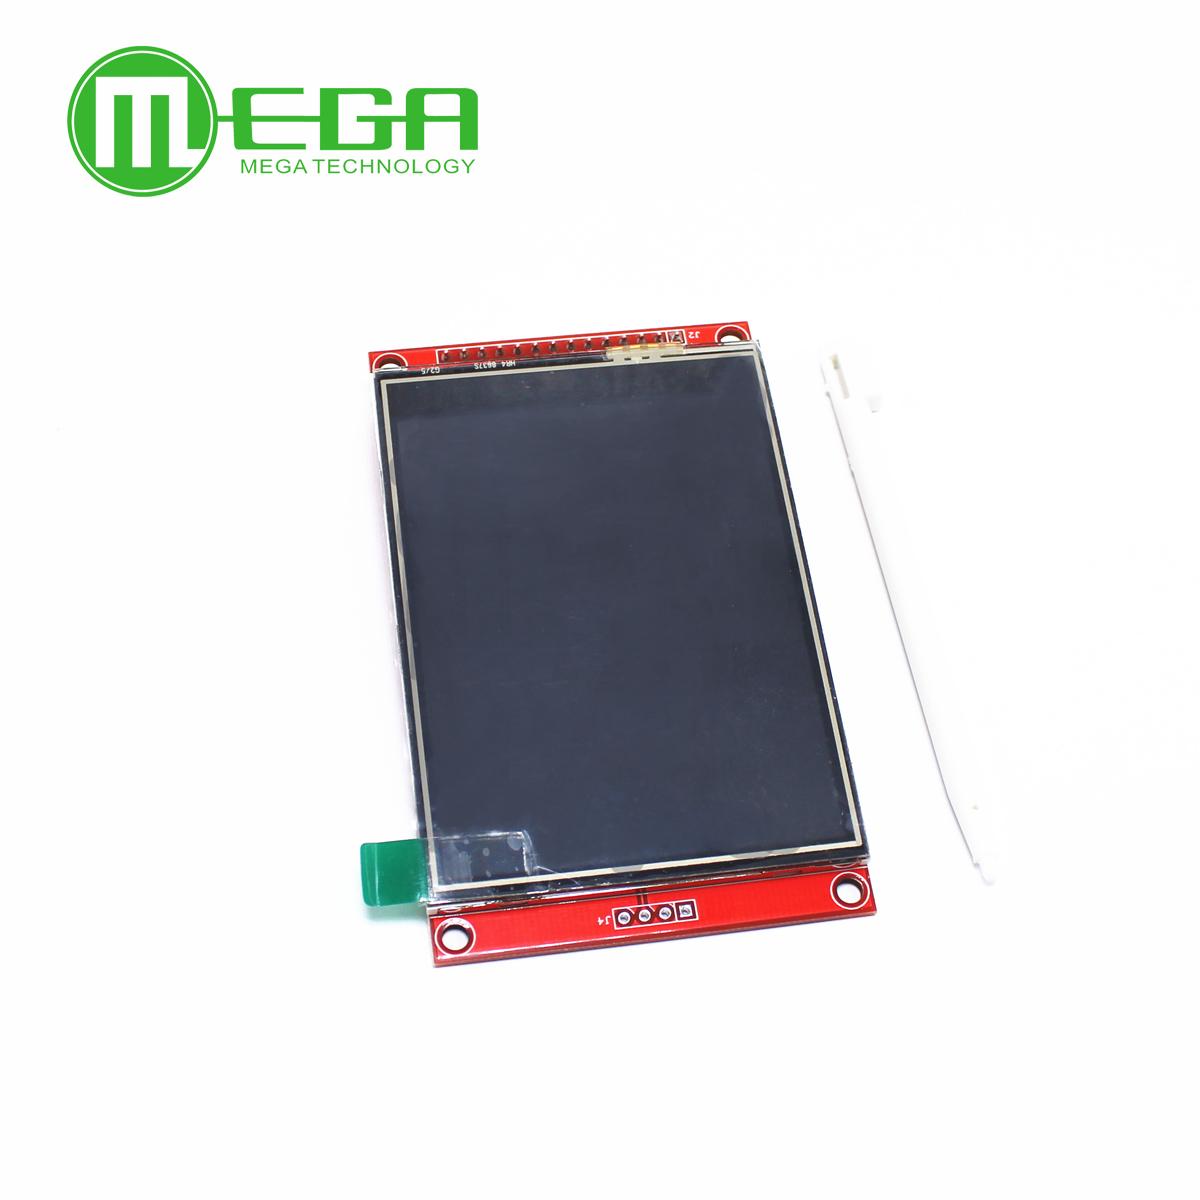 1pcs <font><b>3.2</b></font> inch 320*240 SPI Serial <font><b>TFT</b></font> <font><b>LCD</b></font> Module Display <font><b>Screen</b></font> with <font><b>Touch</b></font> Panel Driver IC ILI9341 for Arduino MCU image